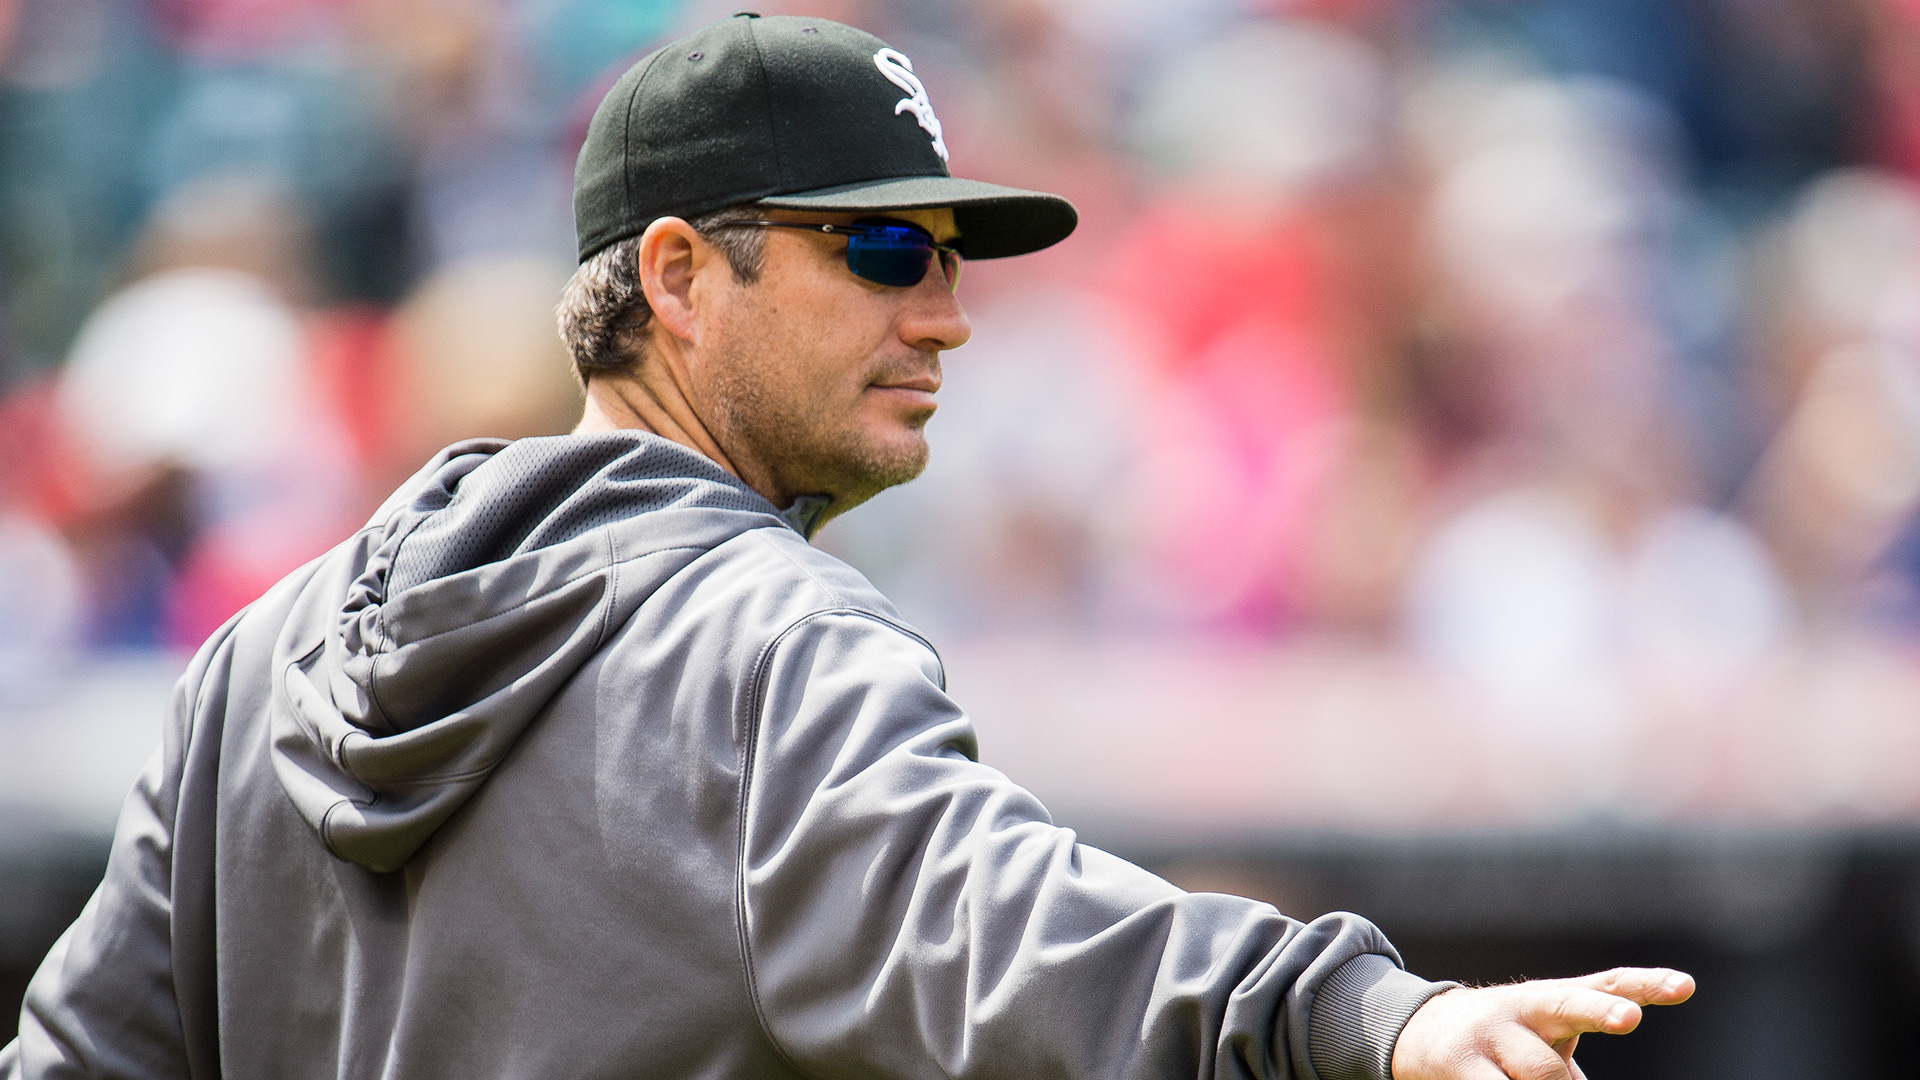 #AskSpector: Is White Sox manager Robin Ventura on the hot seat?